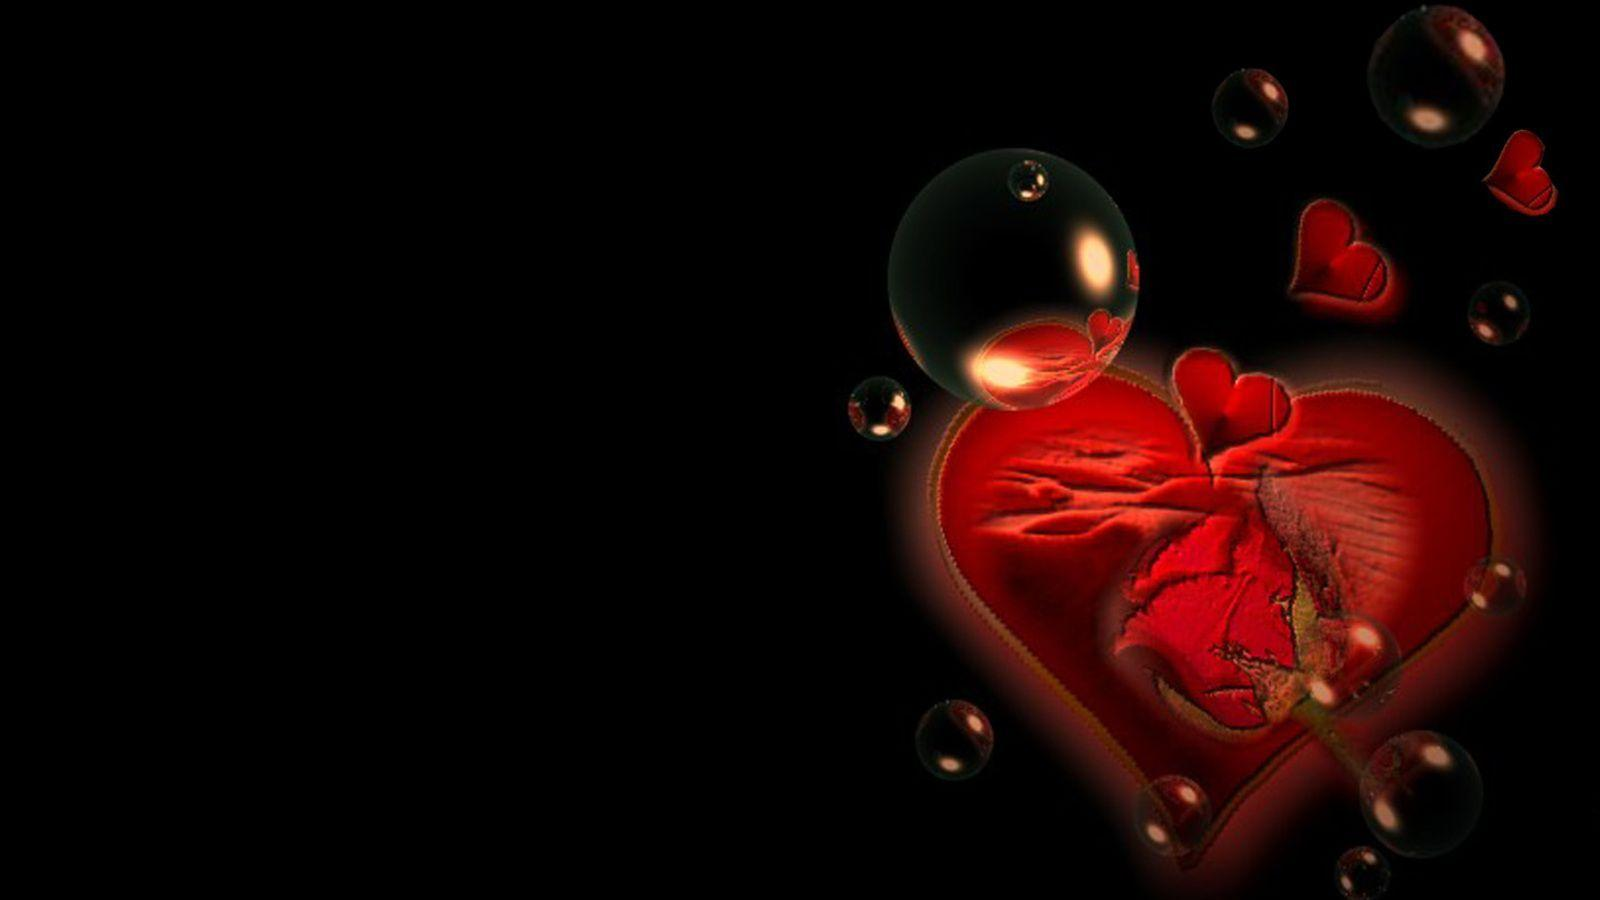 Love Hd Wallpaper Widescreen 3d : Love 3D Wallpapers - Wallpaper cave